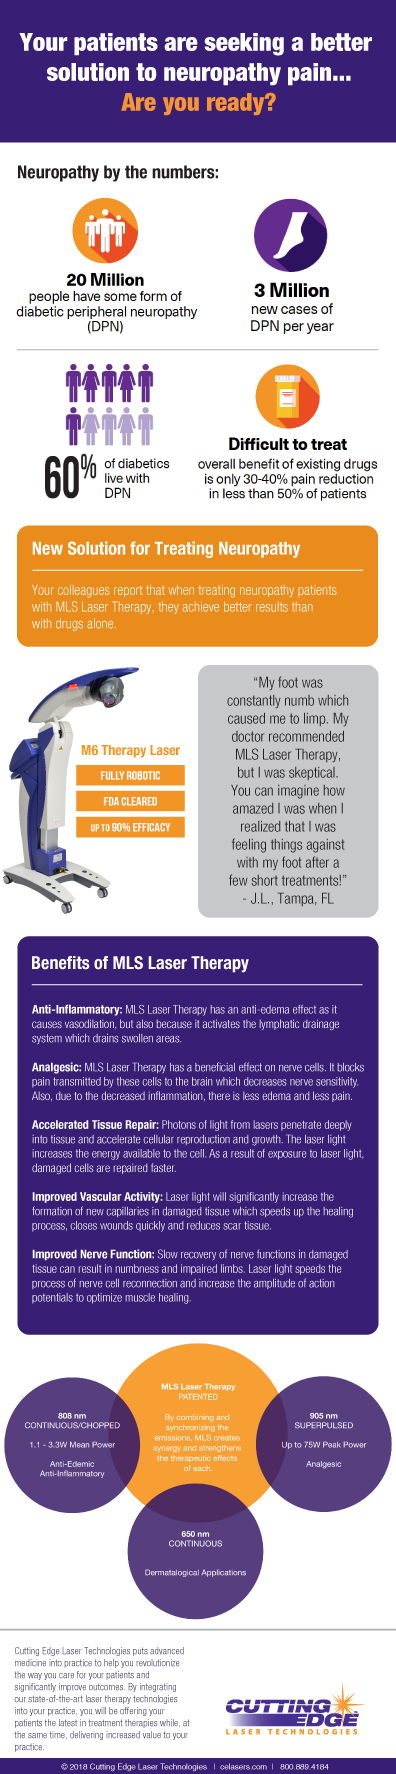 Neuropathy potentially impacts many of your patients. Learn how MLS Therapy can help treat this common and painful condition in this neuropathy infographic.